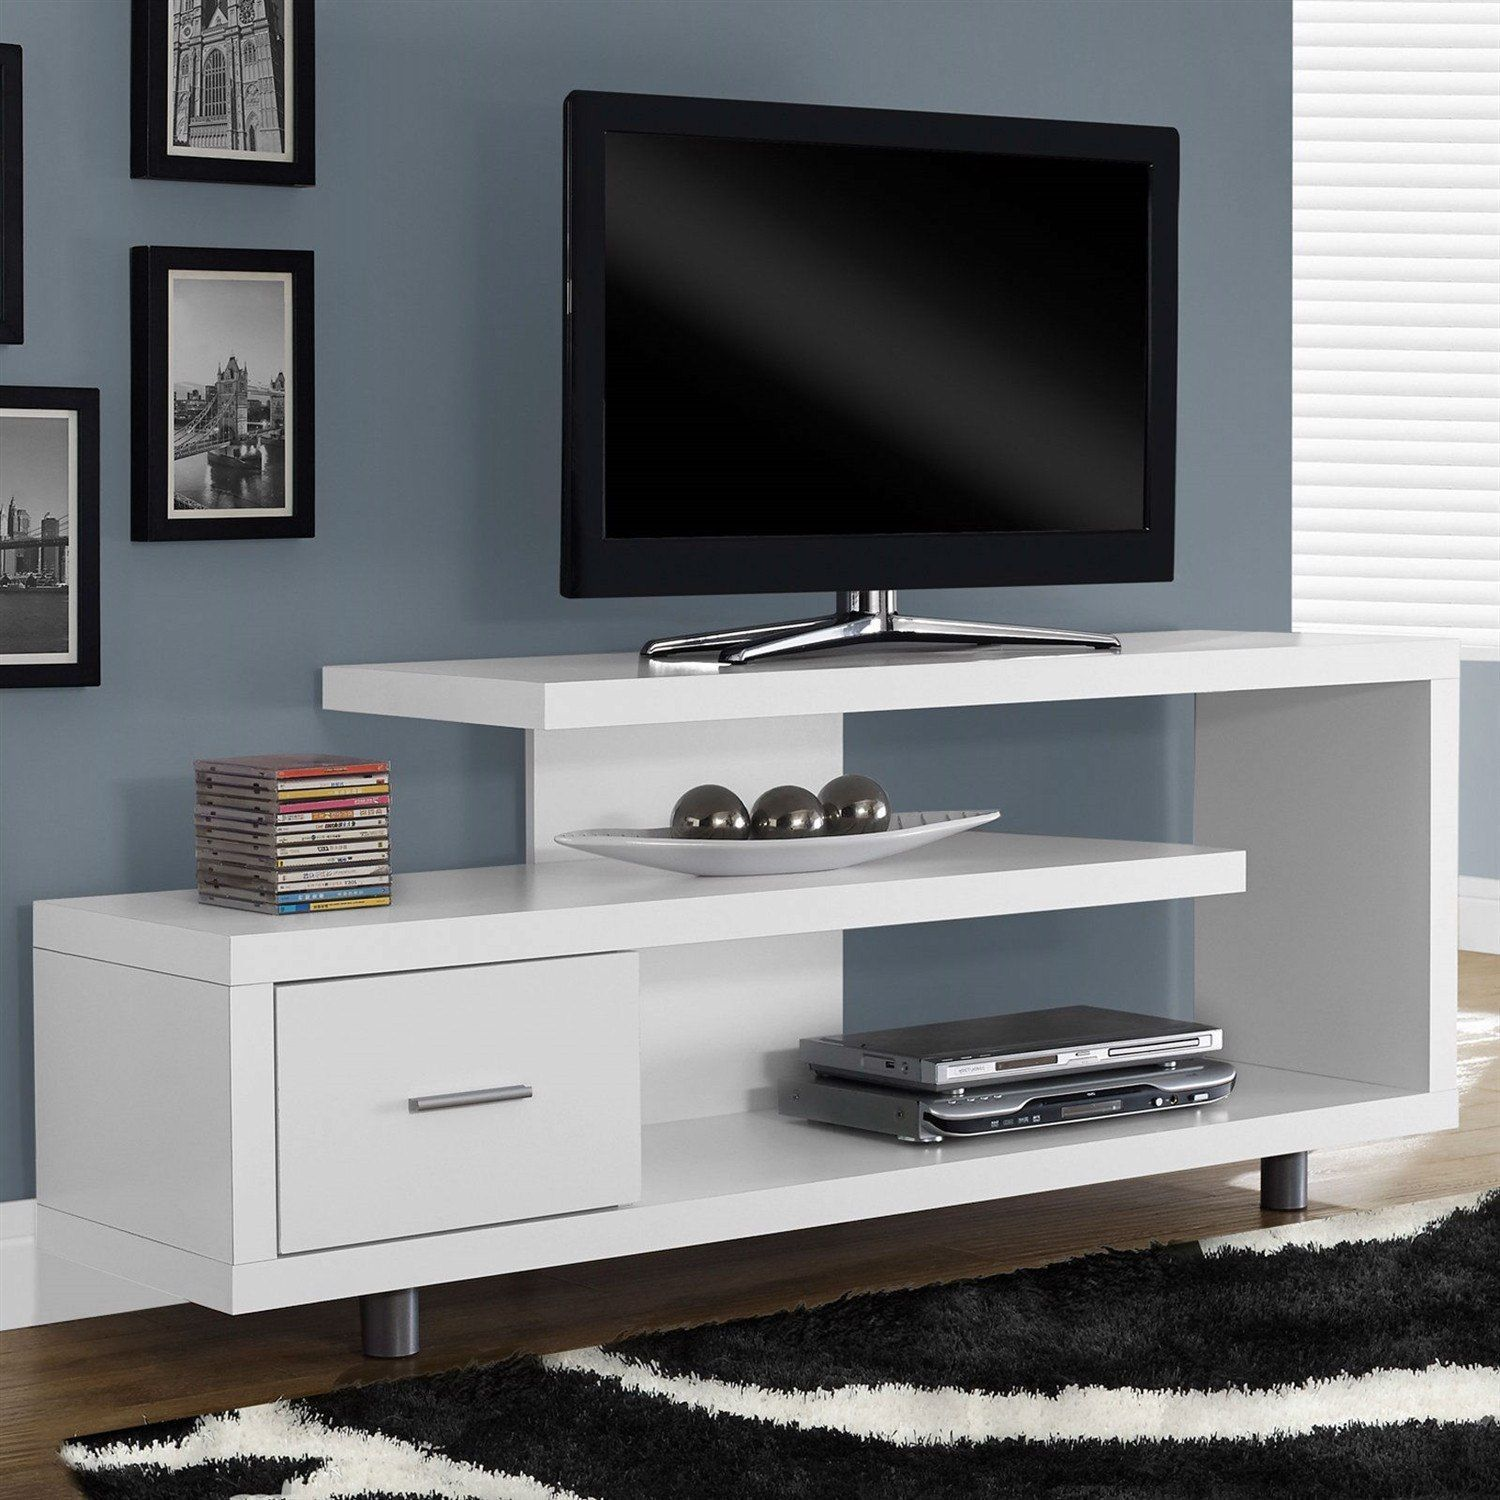 White Modern Tv Stand Fits Up To 60 Inch Flat Screen Tv Tvstand Tv Stand Furniture Tv Stand Decor White Tv Stands